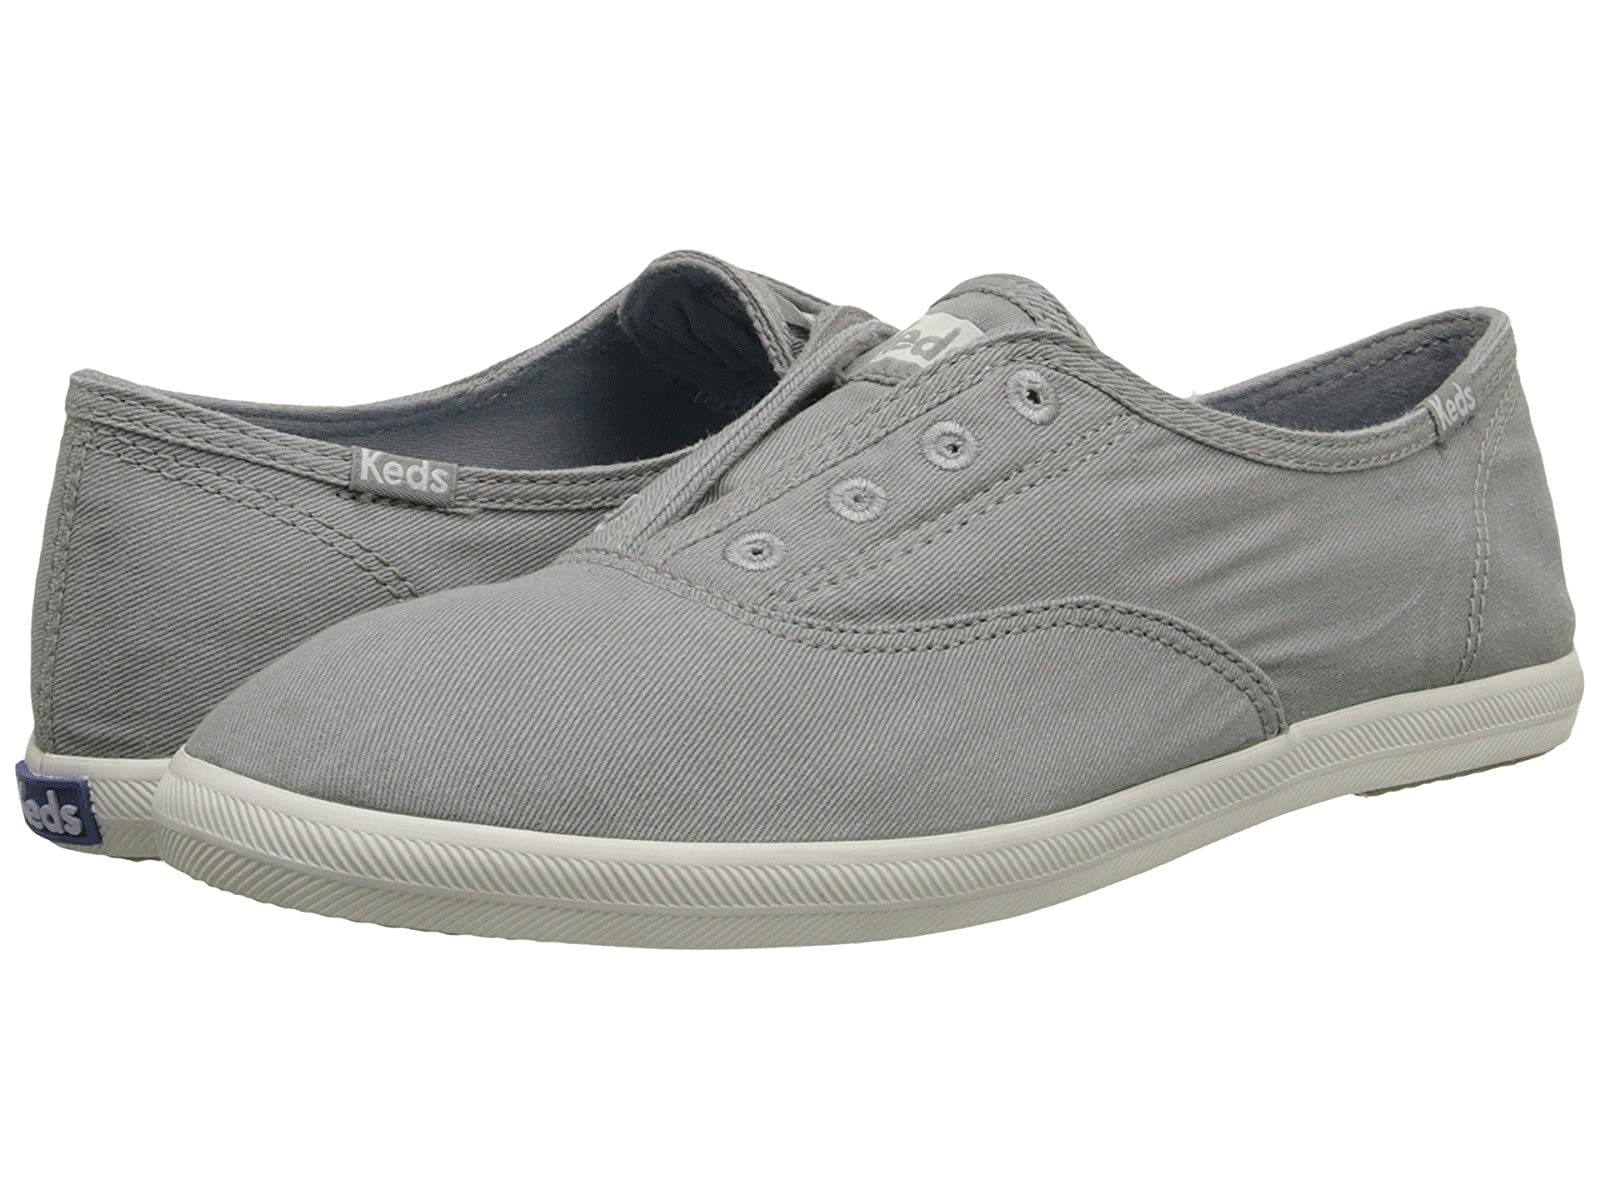 Keds ChillaxAtmospheric grades have affordable shoes